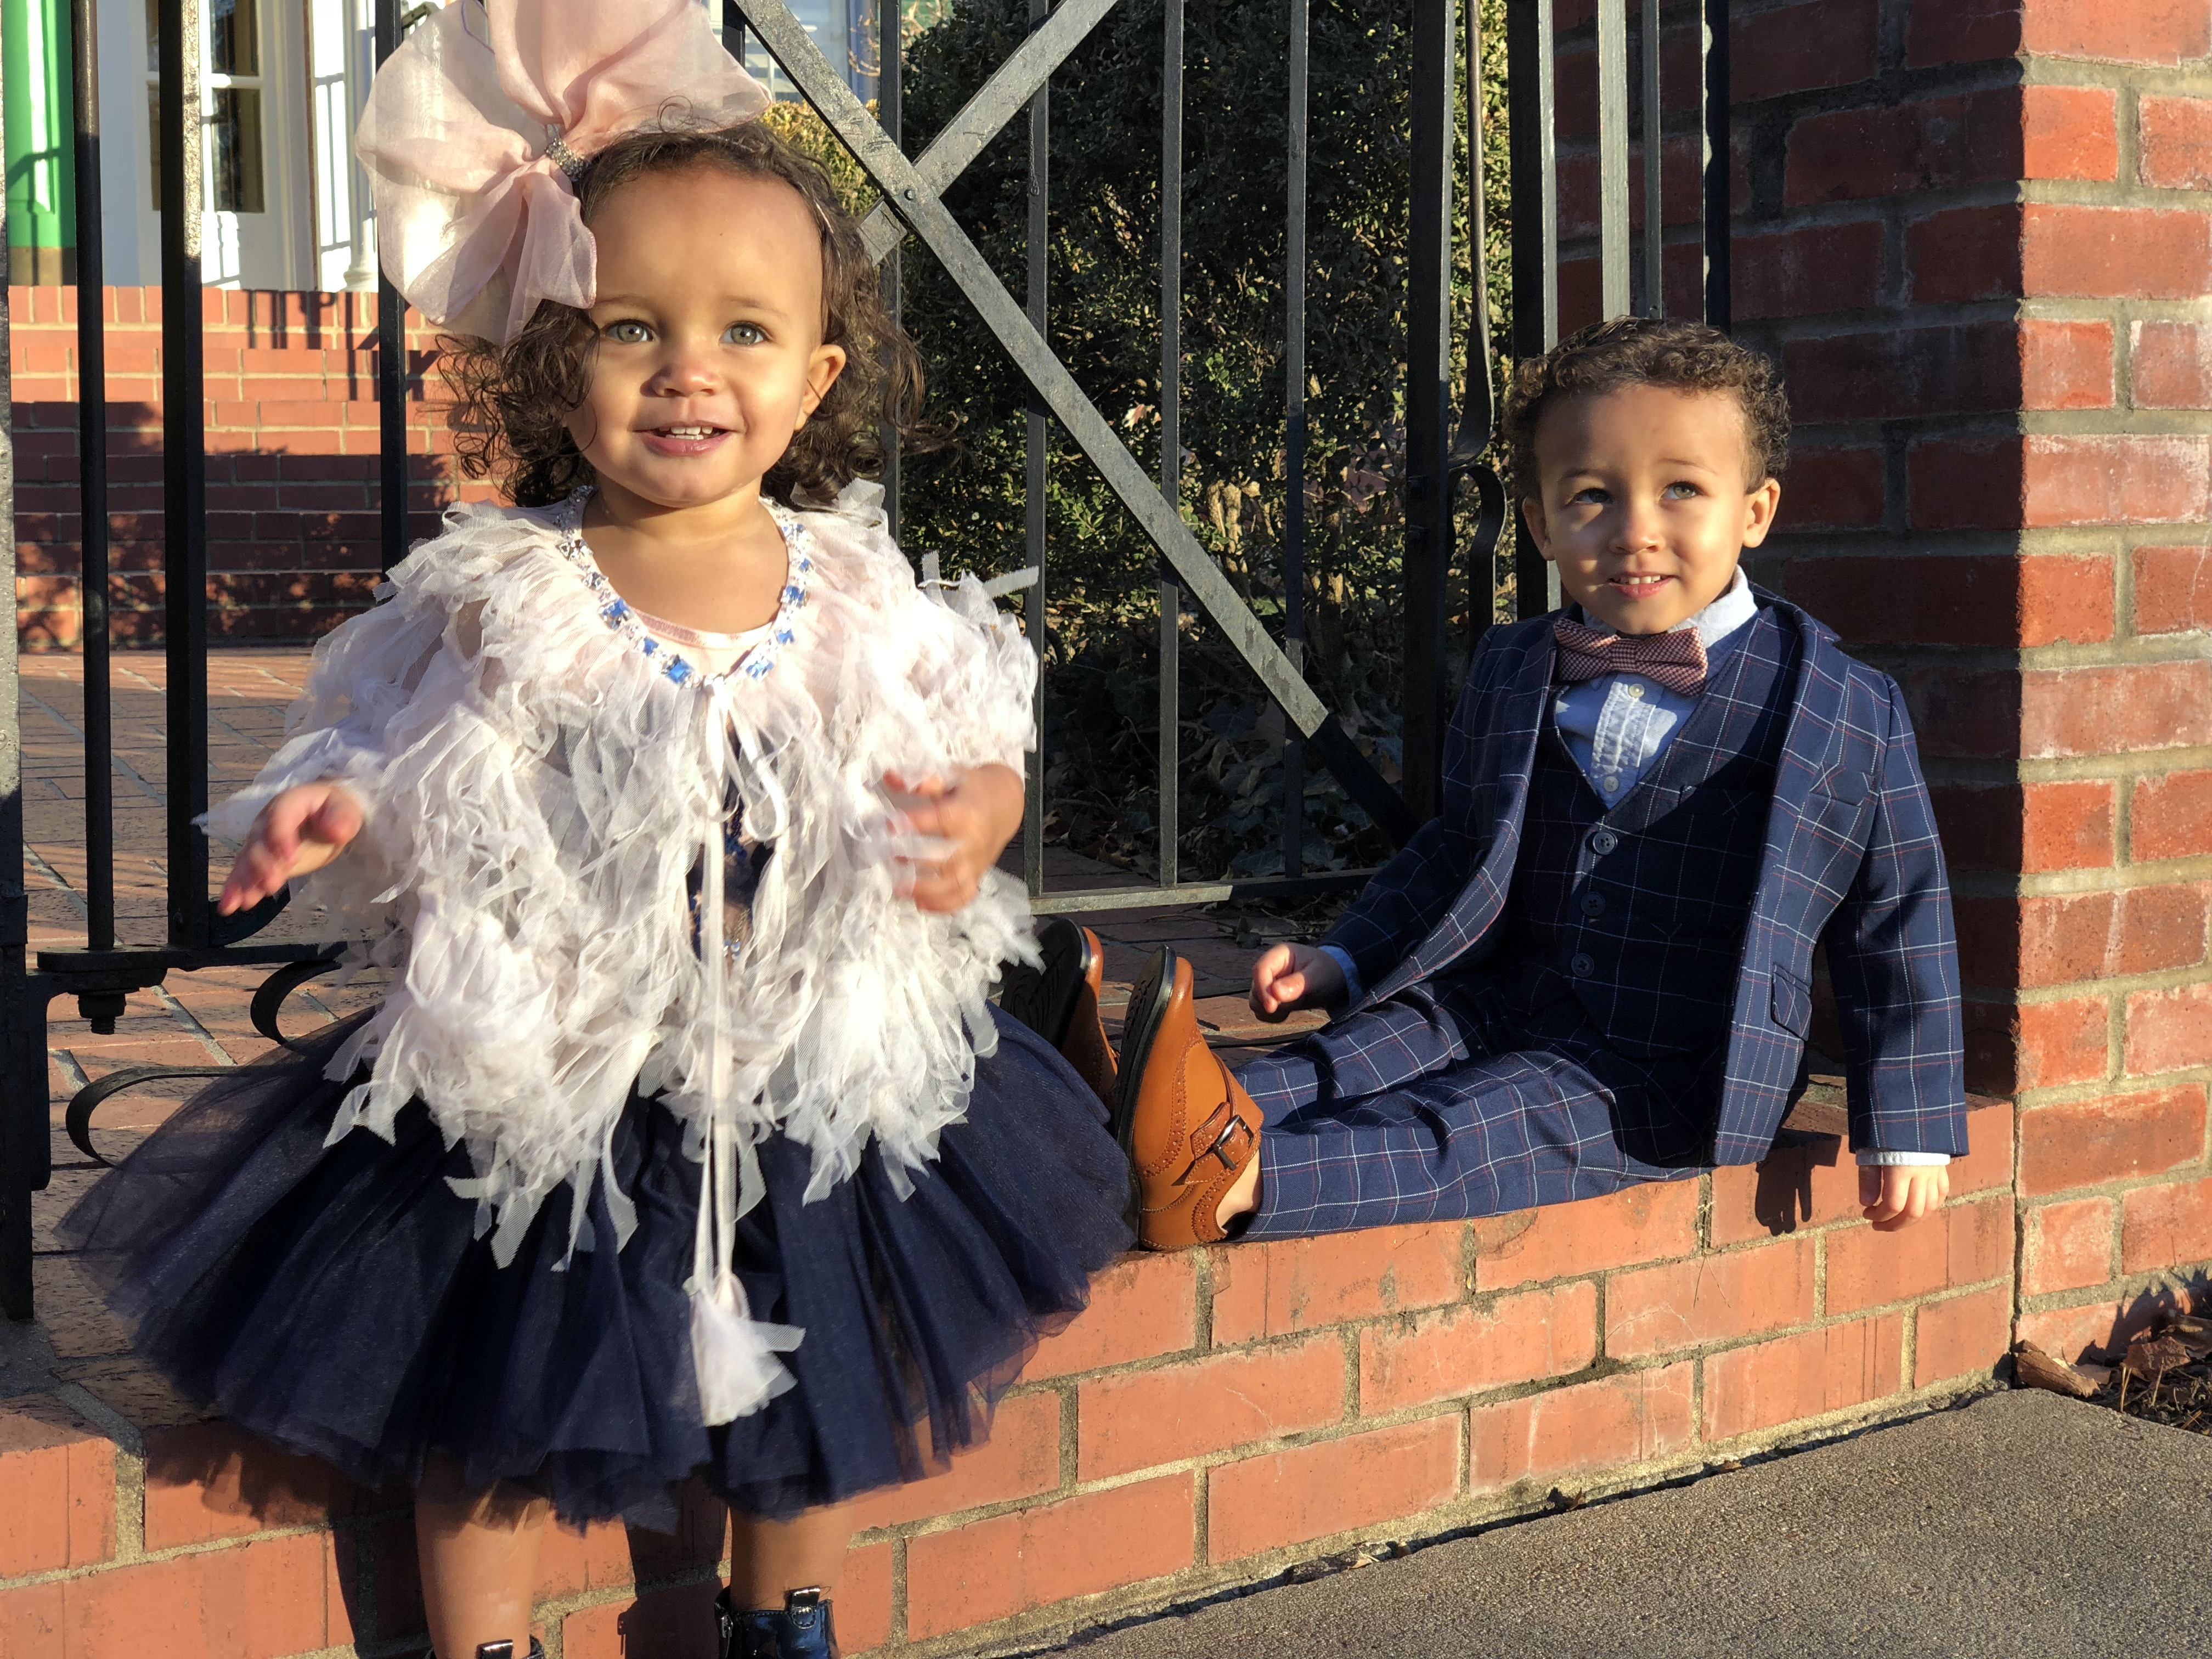 Kids' fashion: Can't buy it? RENT IT from The Borrowed Boutique